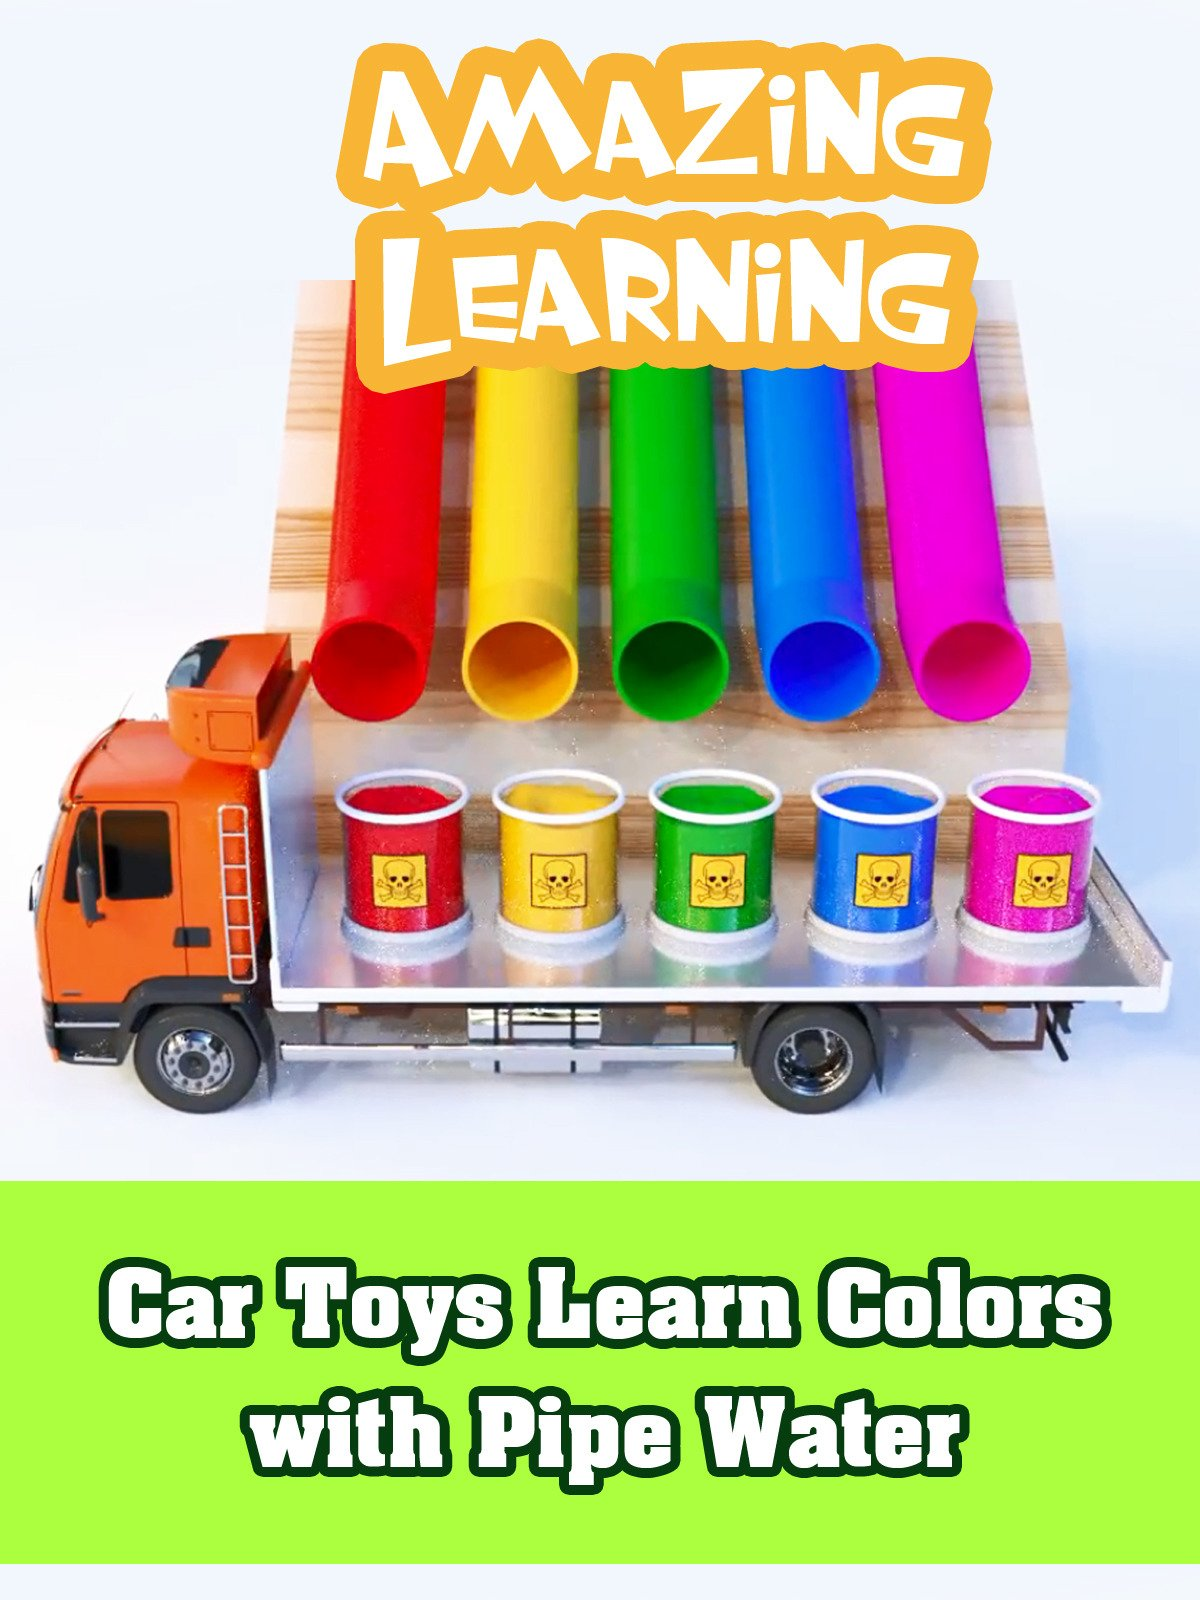 Car Toys Learn Colors with Pipe Water